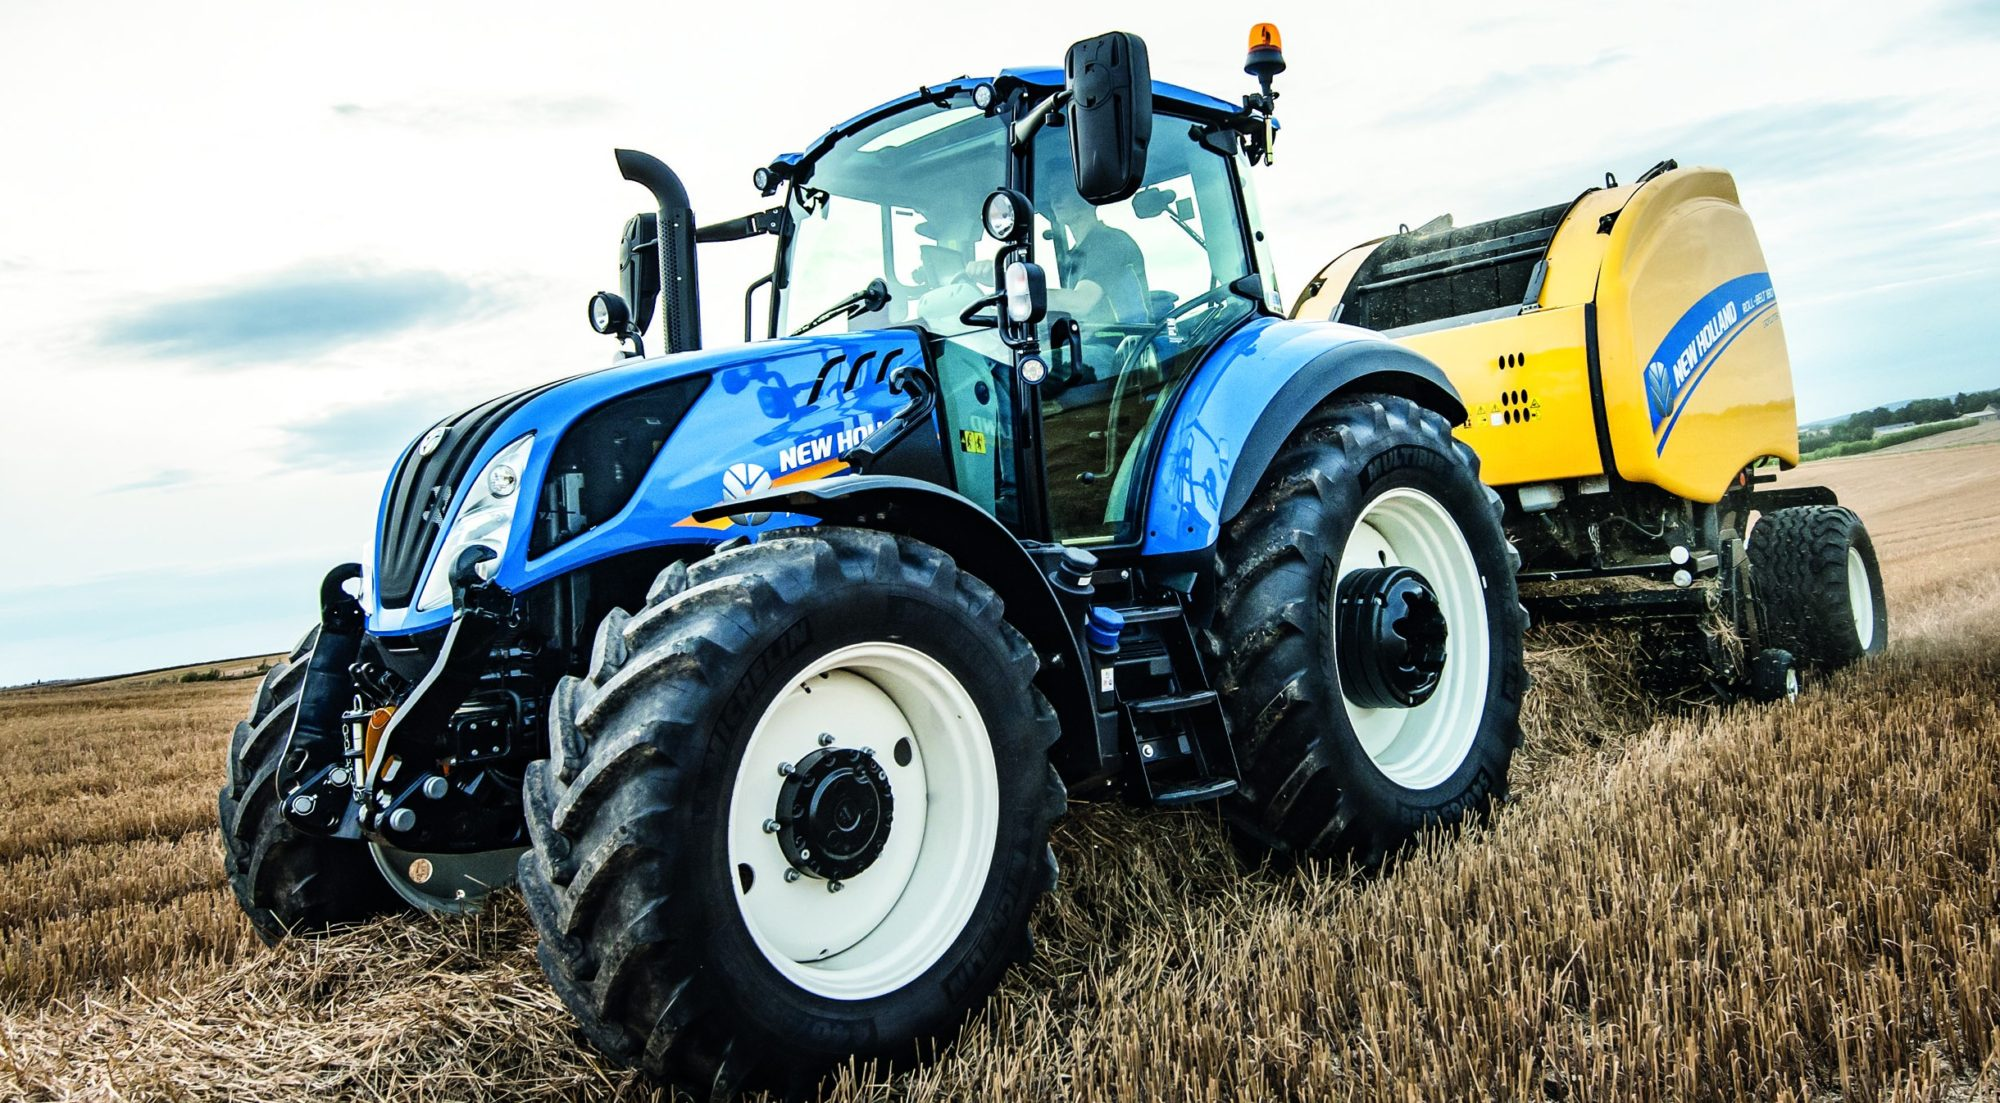 New Holland PDF Manual